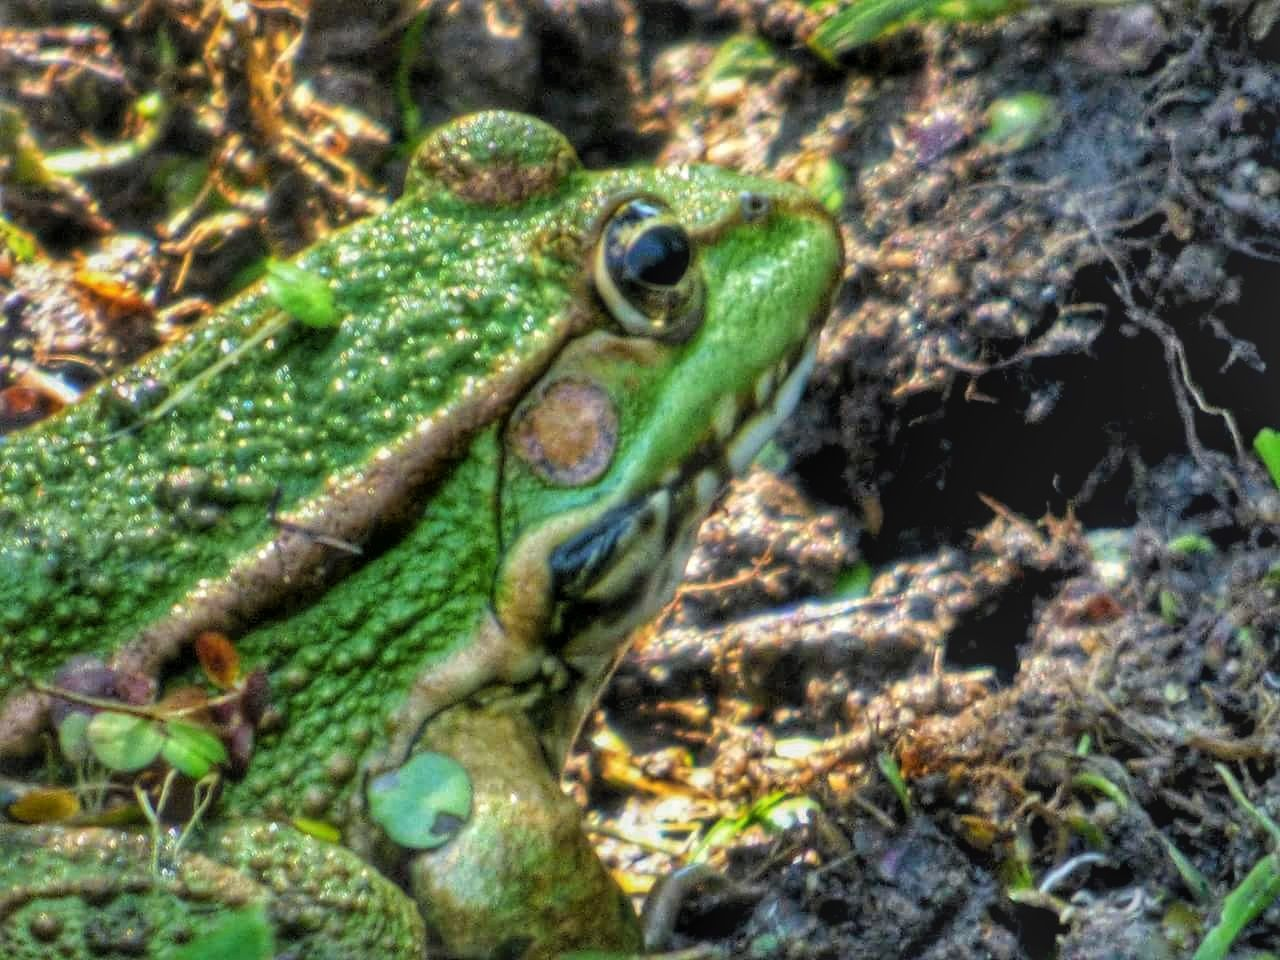 animal themes, one animal, animals in the wild, green color, no people, nature, reptile, high angle view, day, animal wildlife, close-up, outdoors, leaf, camouflage